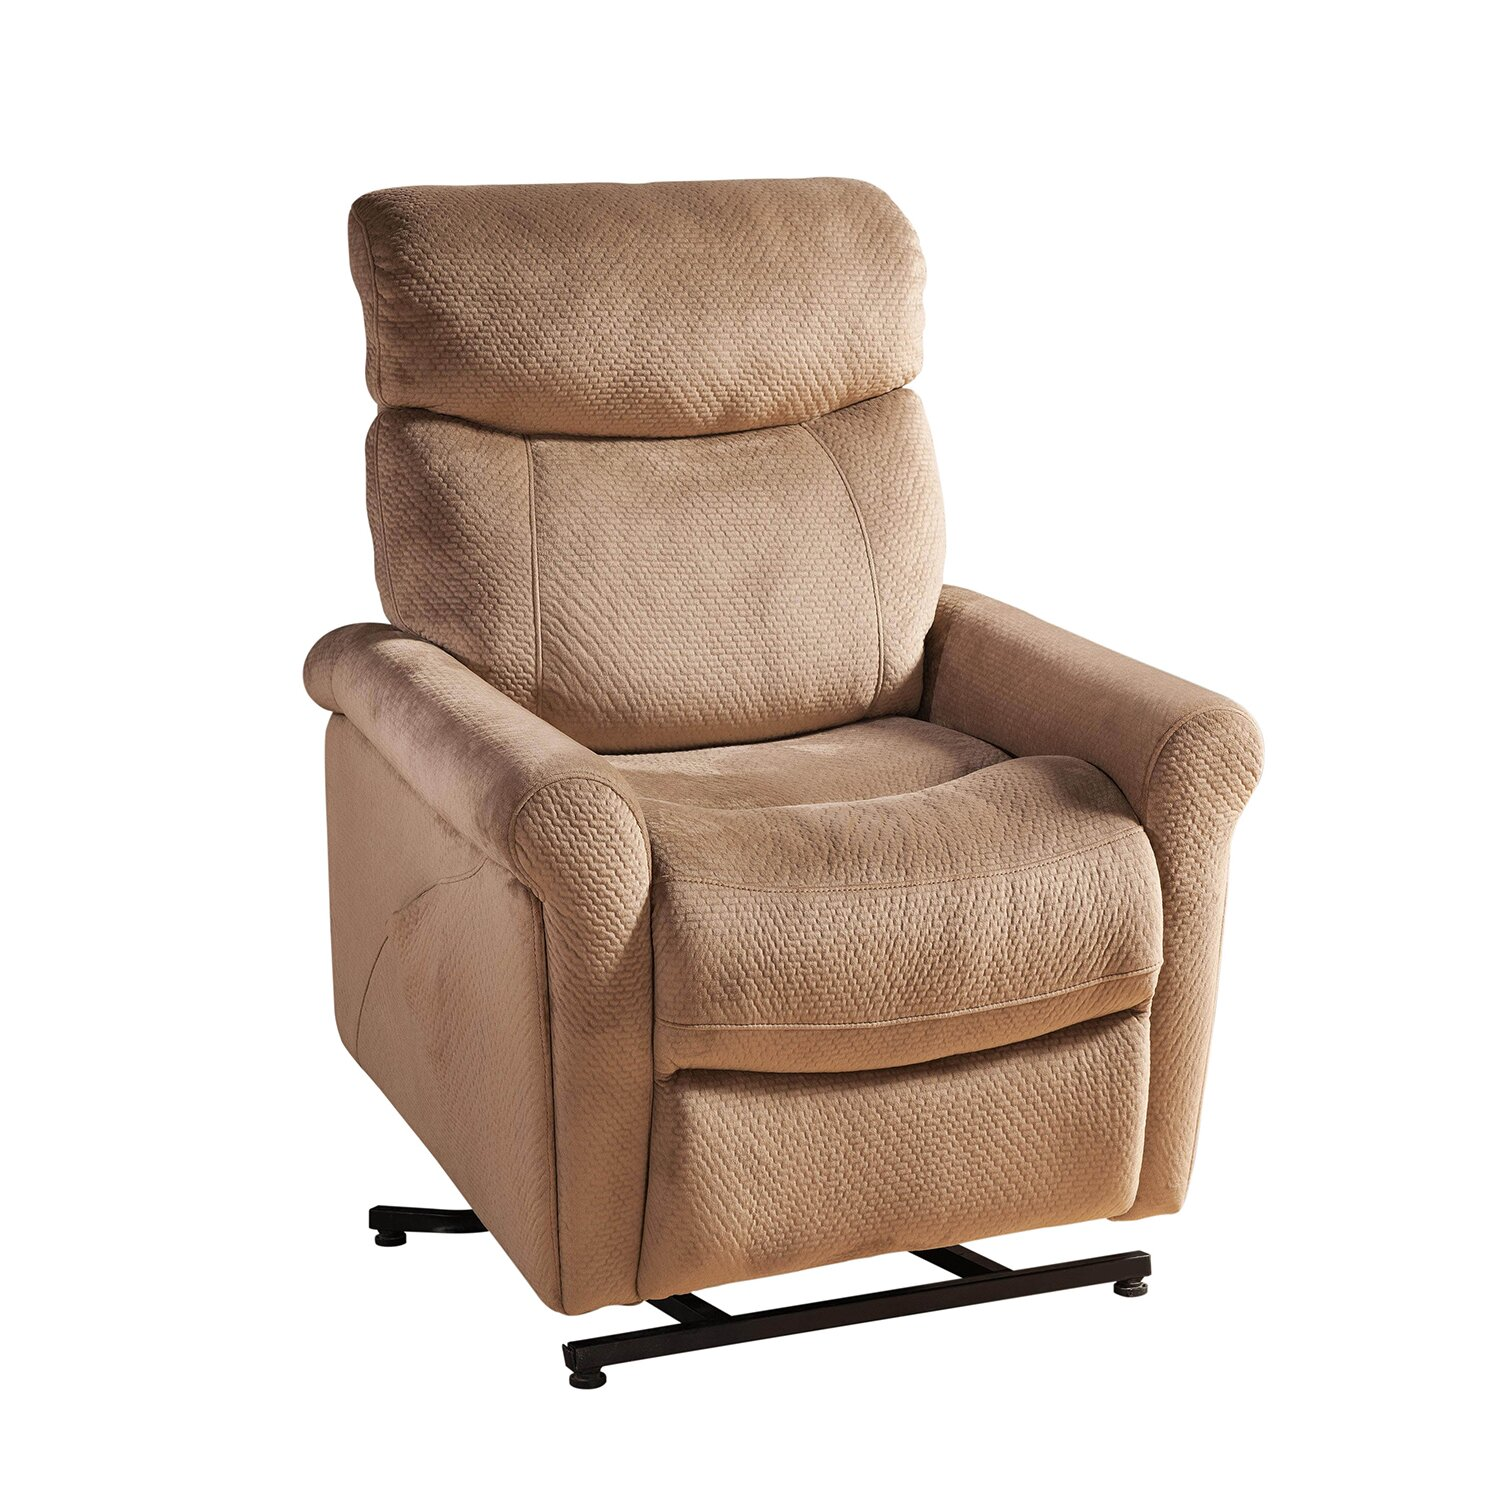 AC Pacific Seat Assists Reclining Lift ChairReviewsWayfair